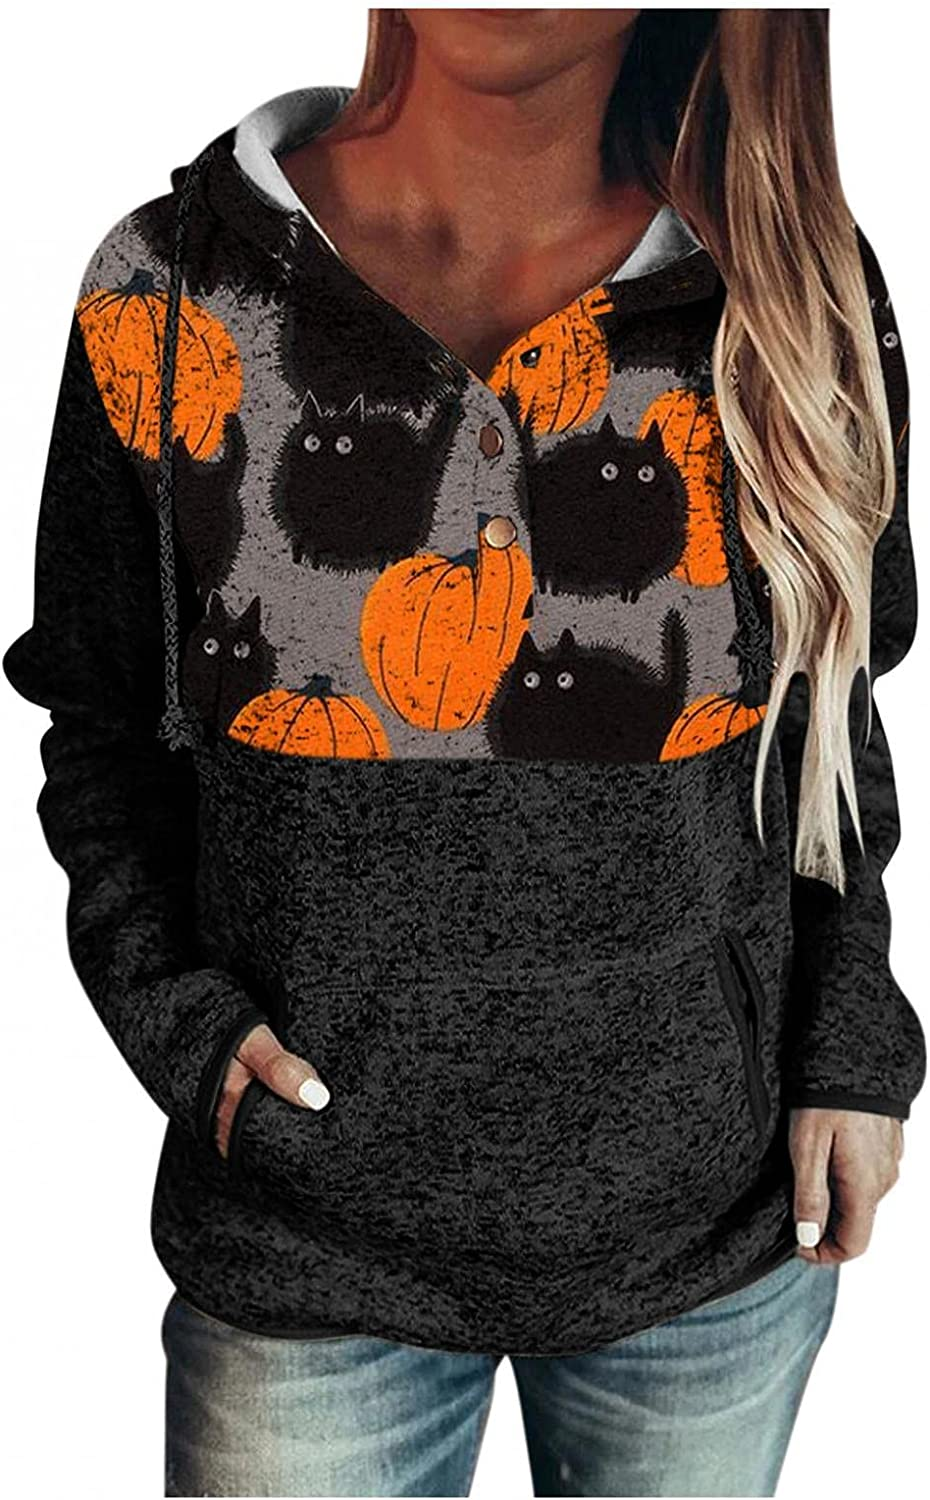 felwors Hoodies for Women, Womens Color Block Halloween Print Tops Long Sleeve Casual Pullover Sweatshirts with Pockets